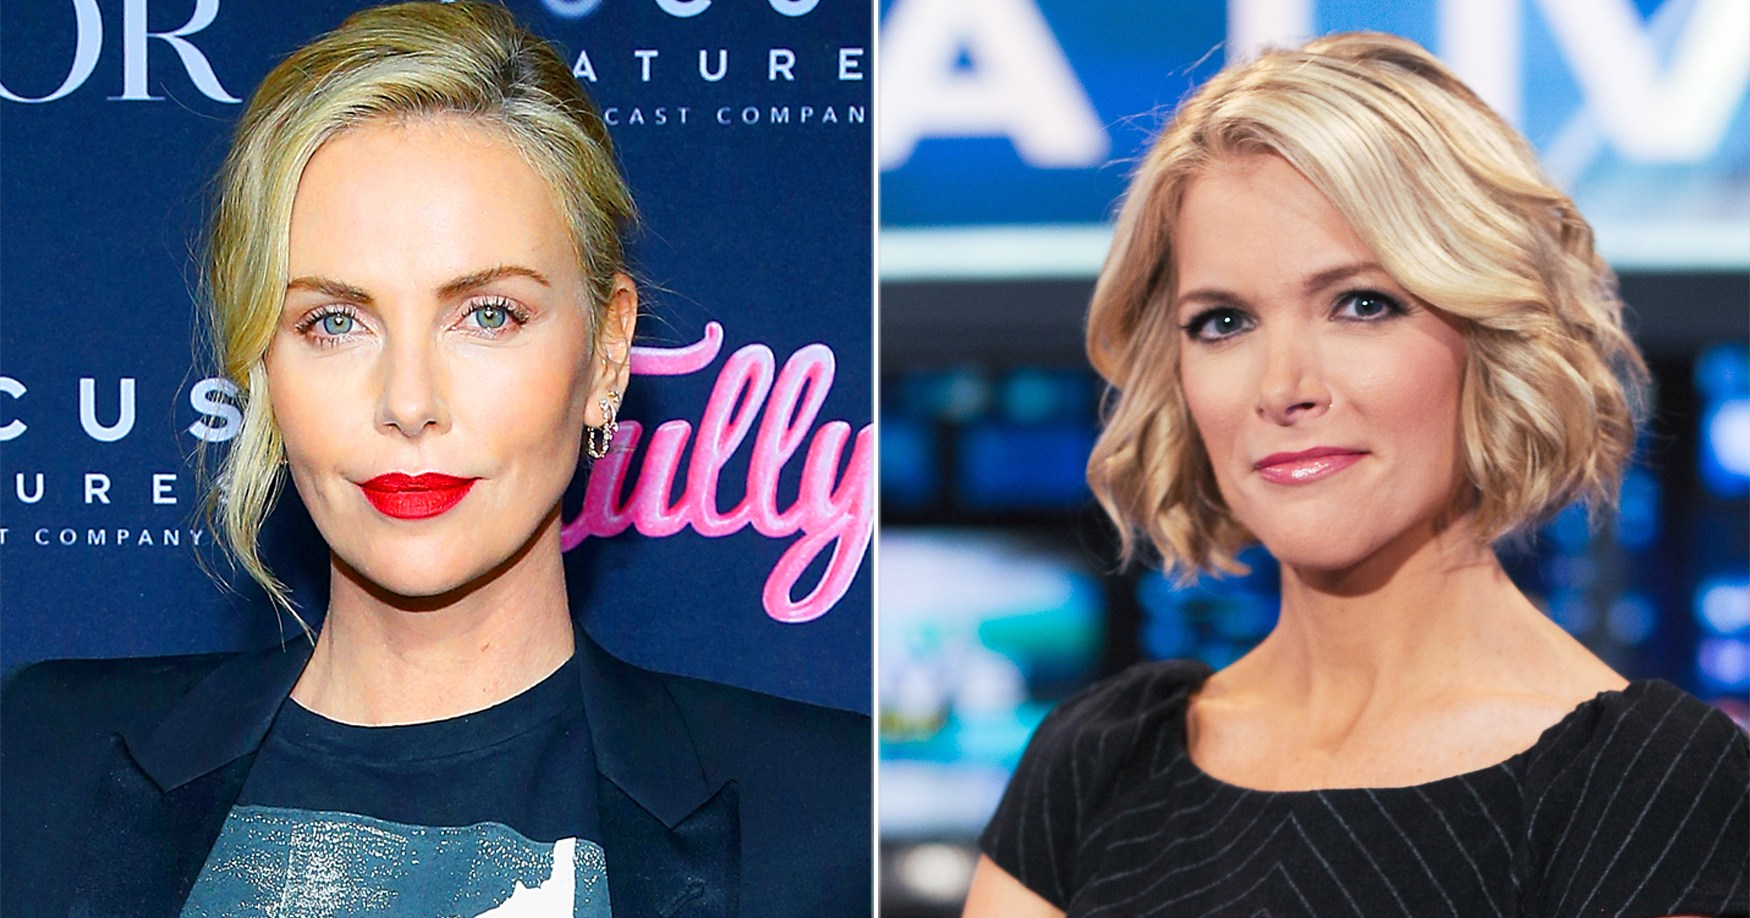 Charlize Theron Opens Up About Playing Megyn Kelly in Roger Ailes Movie Amid Scandal